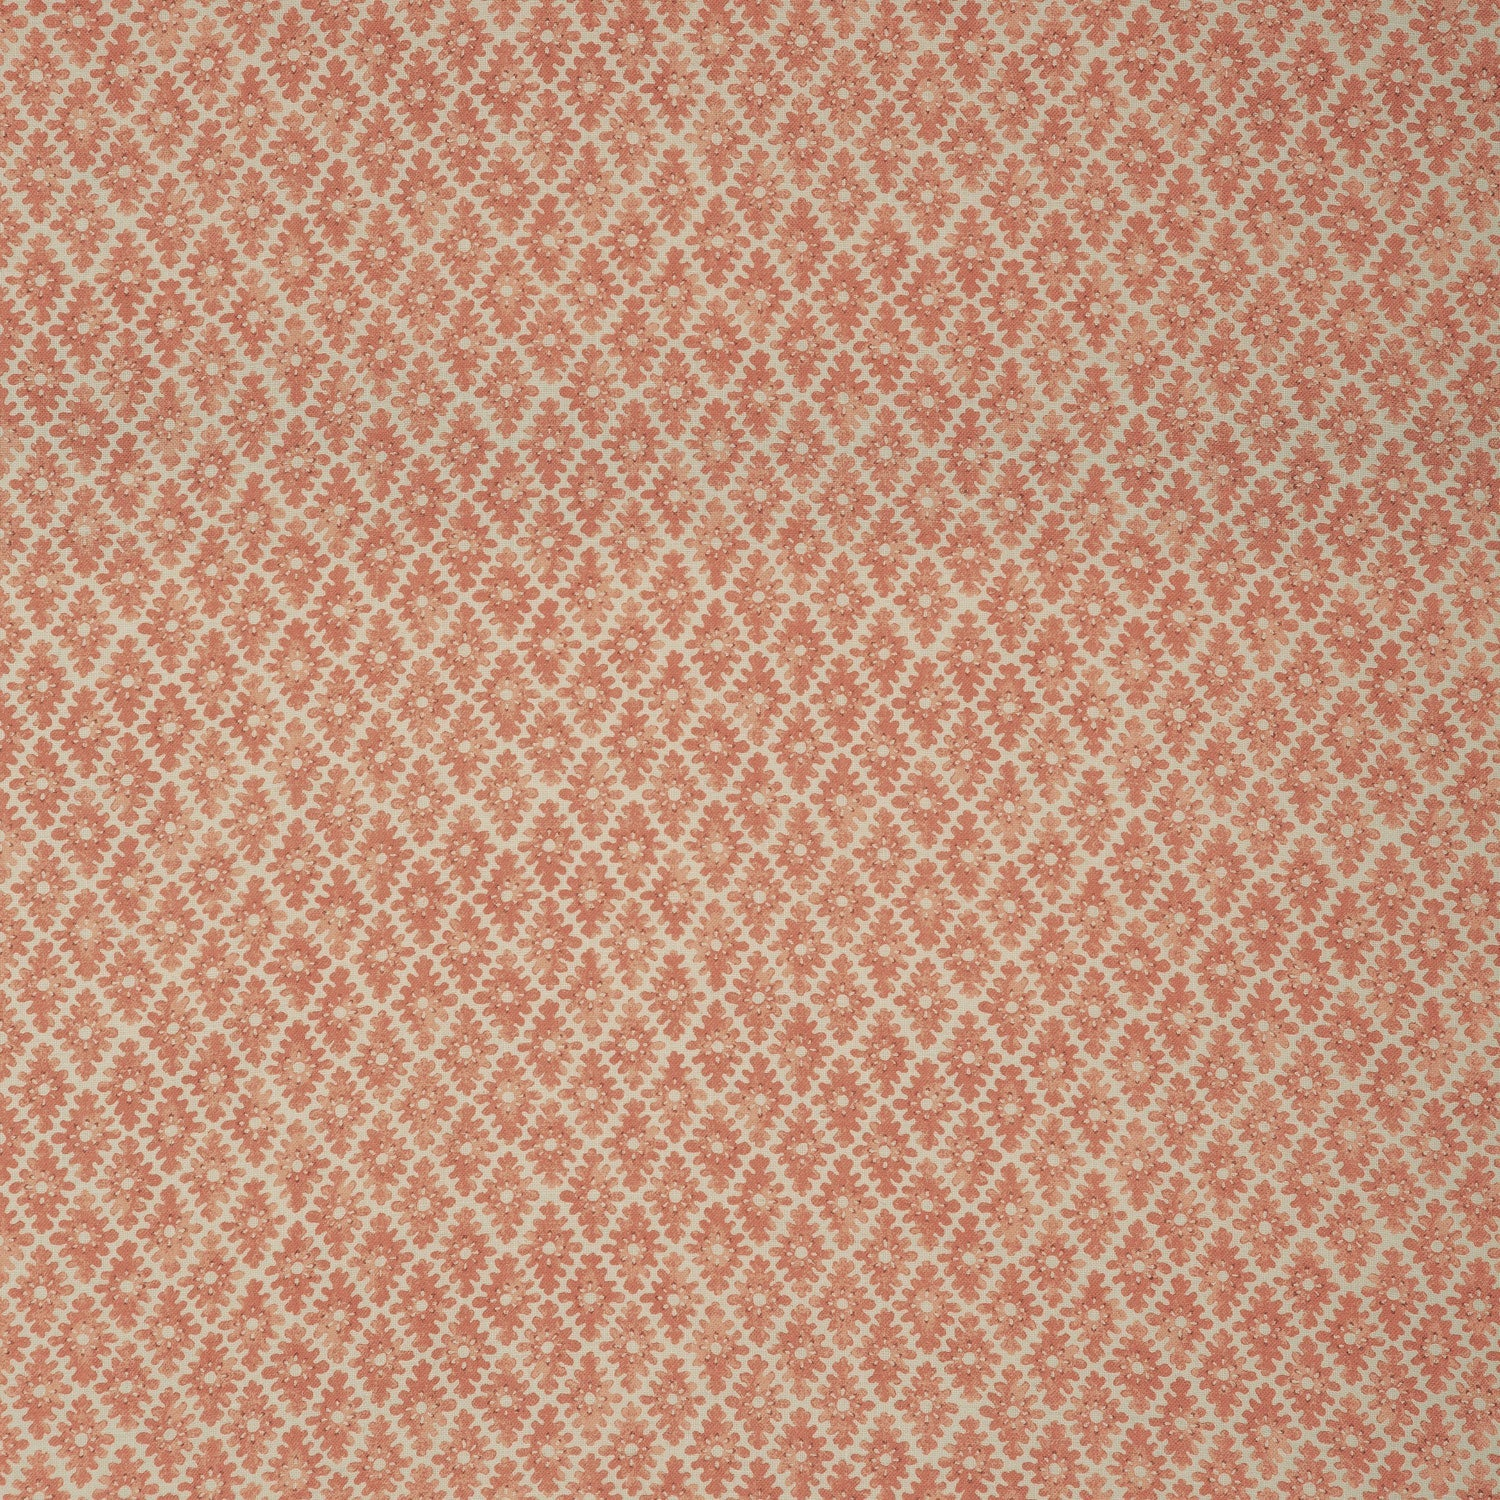 Fabric sample of a orange and neutral printed linen fabric for curtains and upholstery